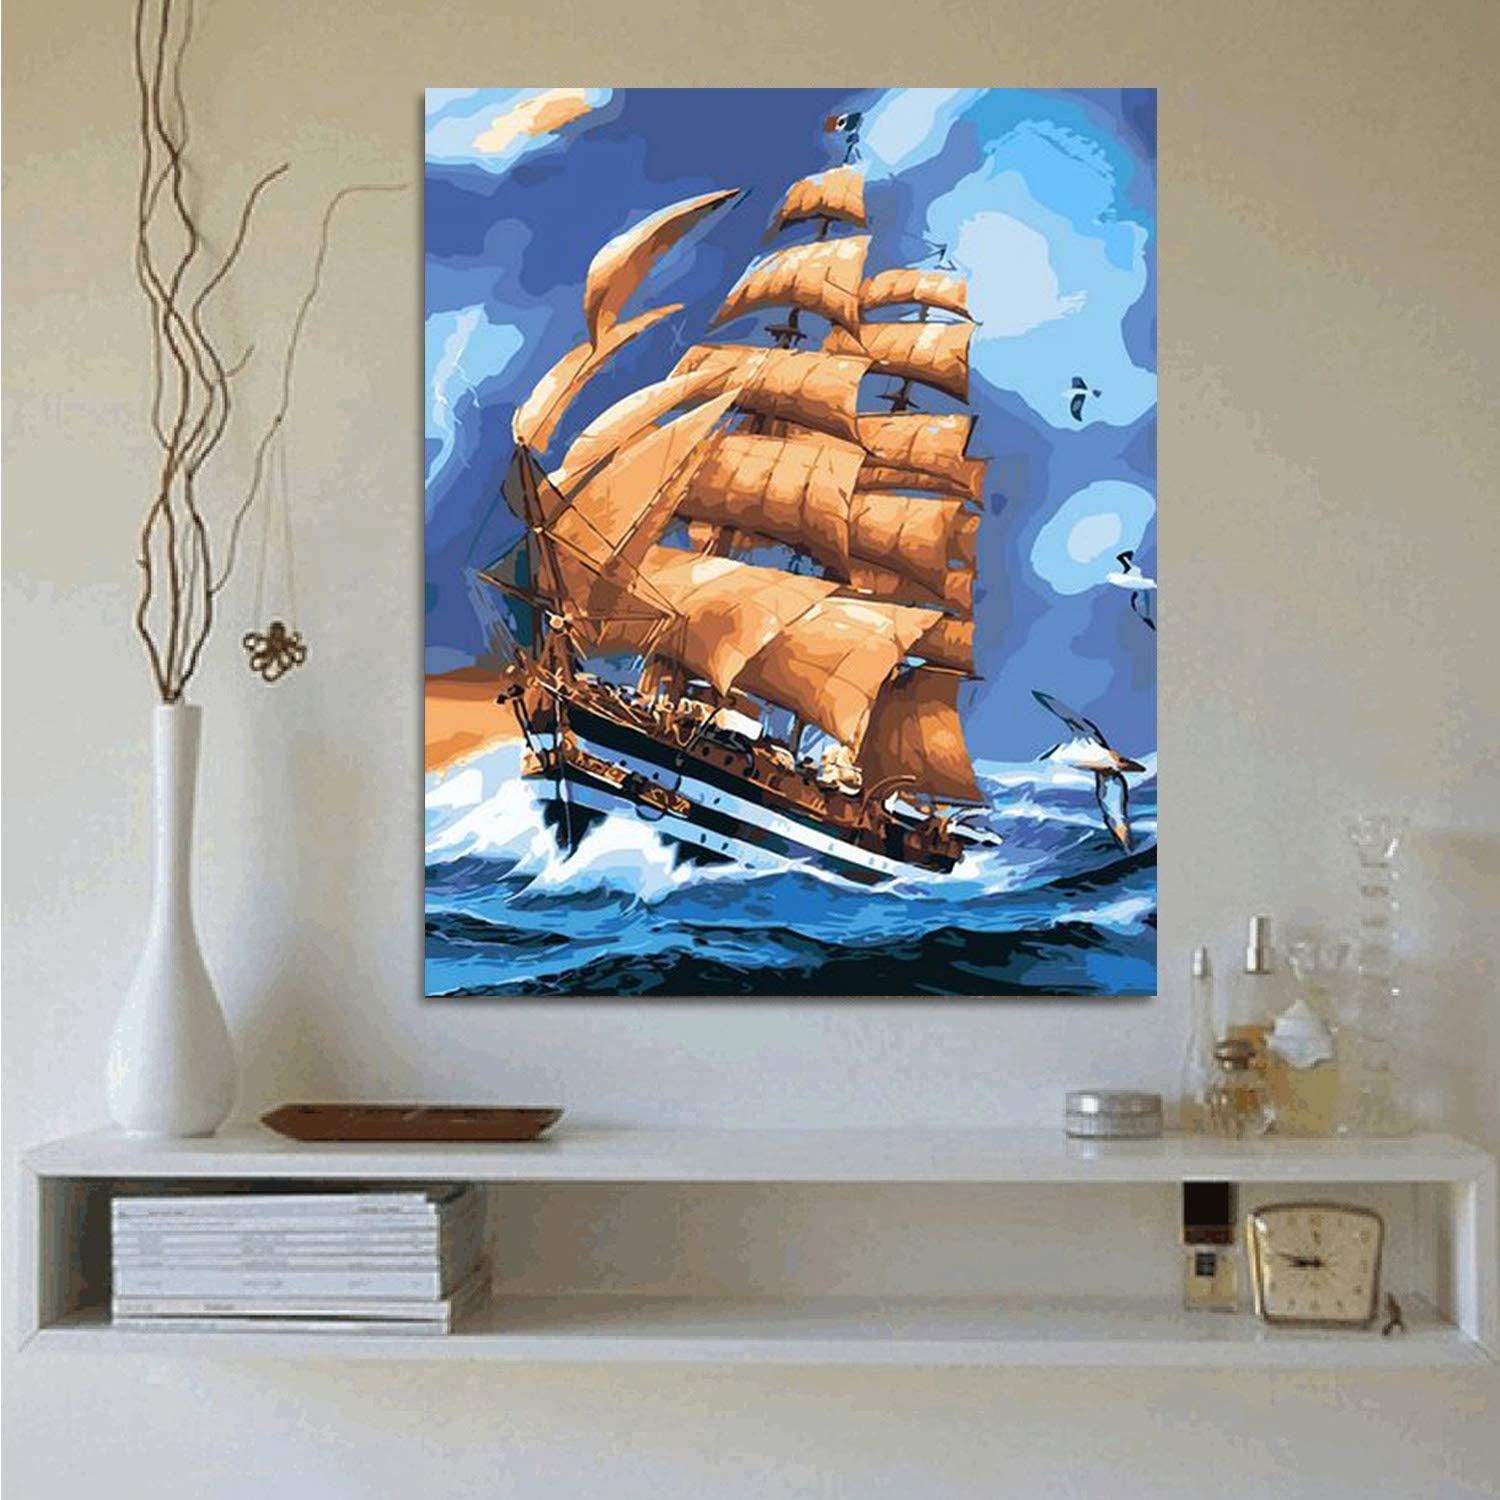 Tungsang Frame Paint by Numbers DIY Oil Paint Works Paint by Number for Kids 16X12 inch Painting on Canvas with Frame Gift Idea for Xmas Panter